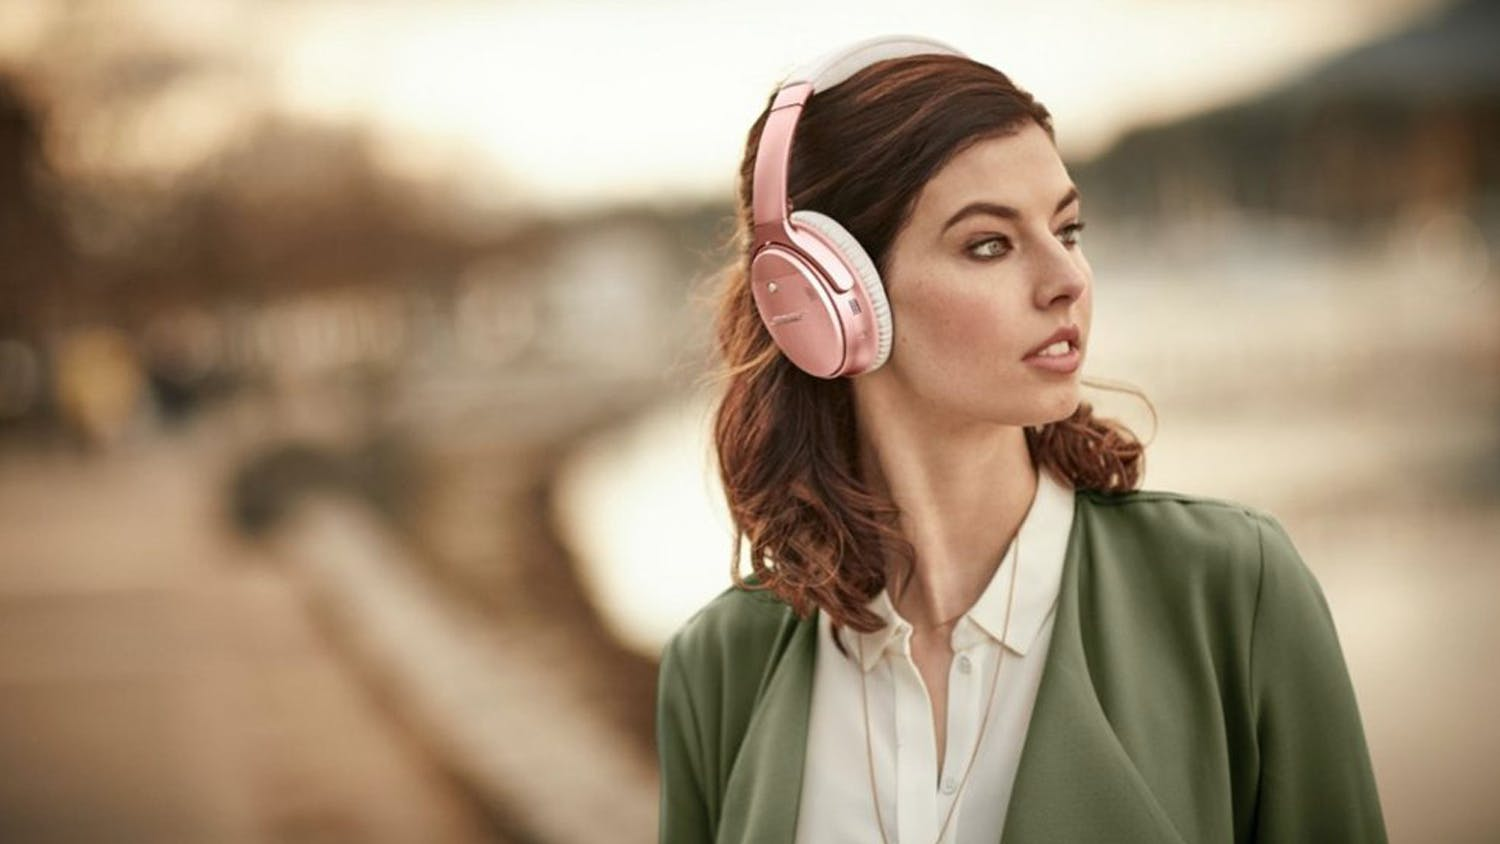 Bose QuietComfort 35 II Wireless Over-Ear Headphones - Rose Gold